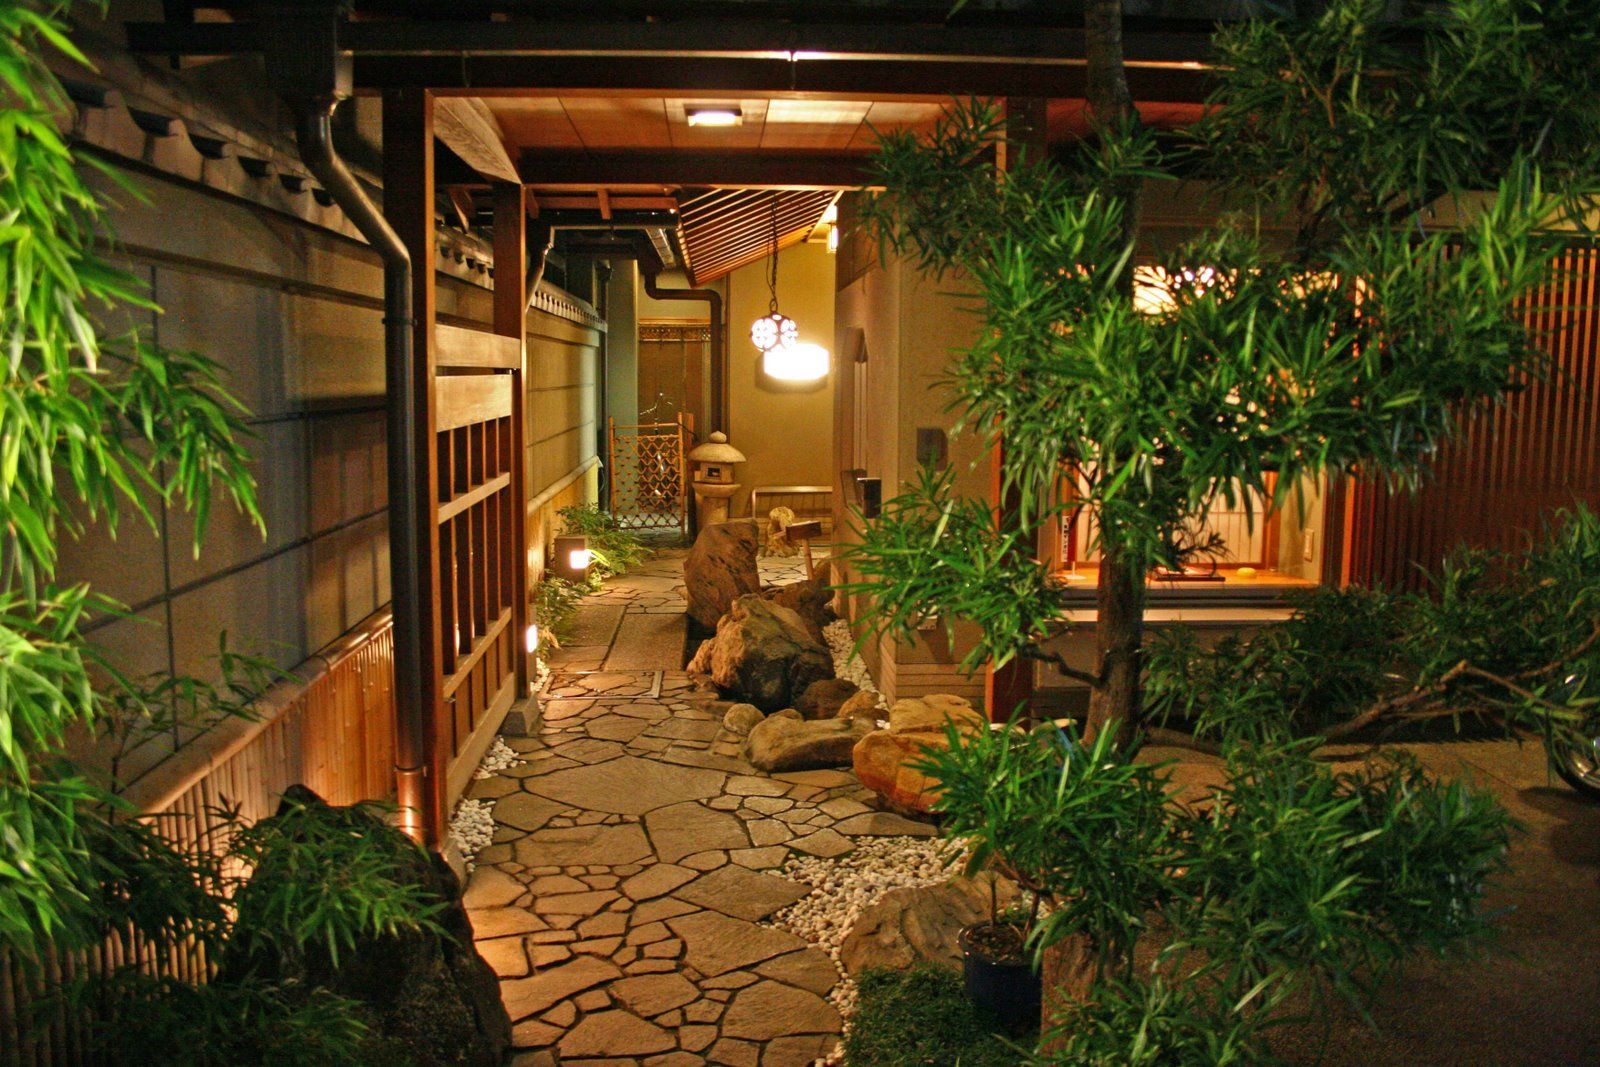 Hoshi Ryokan Is Considered The Oldest Hotel In The World. Located In The  Awazu Onsen